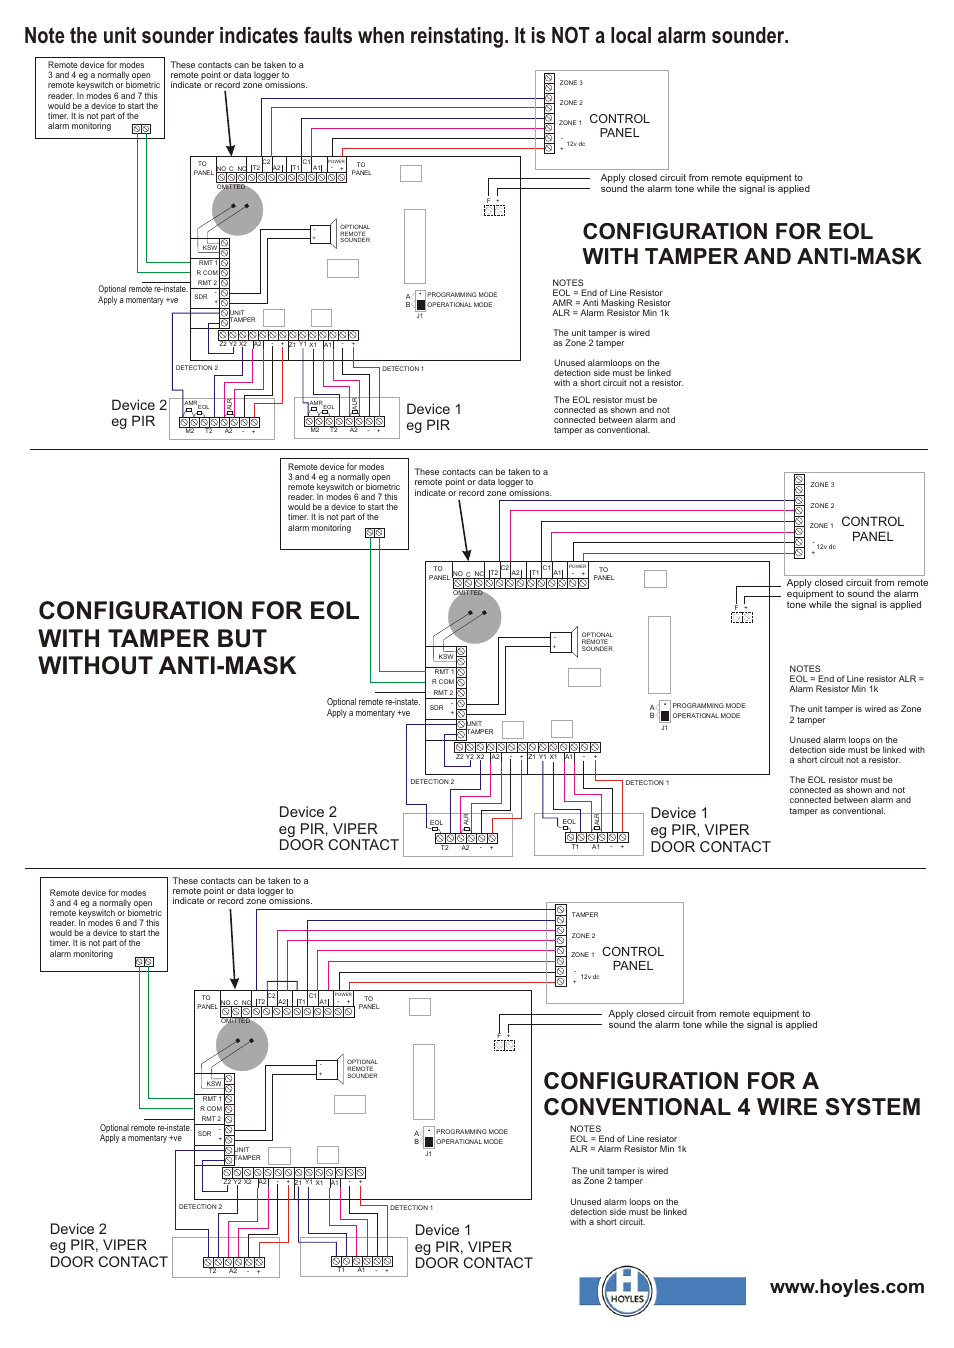 Configuration For A Conventional 4 Wire System End Of Line Resistors Eolr Normally Open And Closed Circuits Eol With Tamper Anti Mask Device 2 Eg Pir Viper Door Contact Hoyles Zoneguard